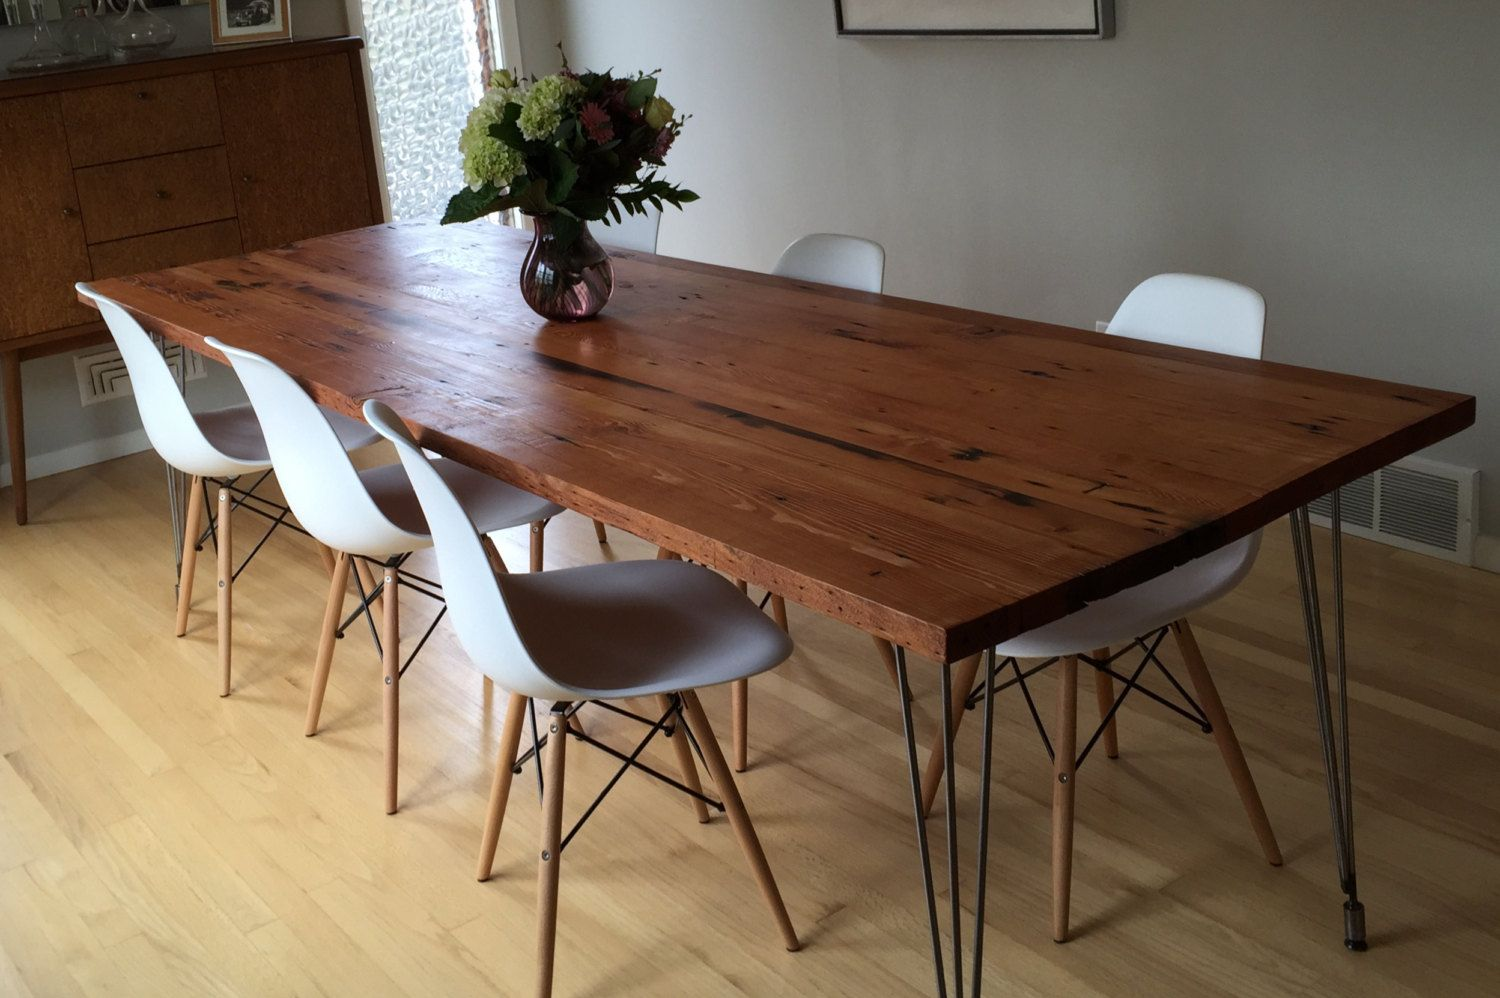 Pin By Vidhi Sheth On Home With Images Wood Dining Table